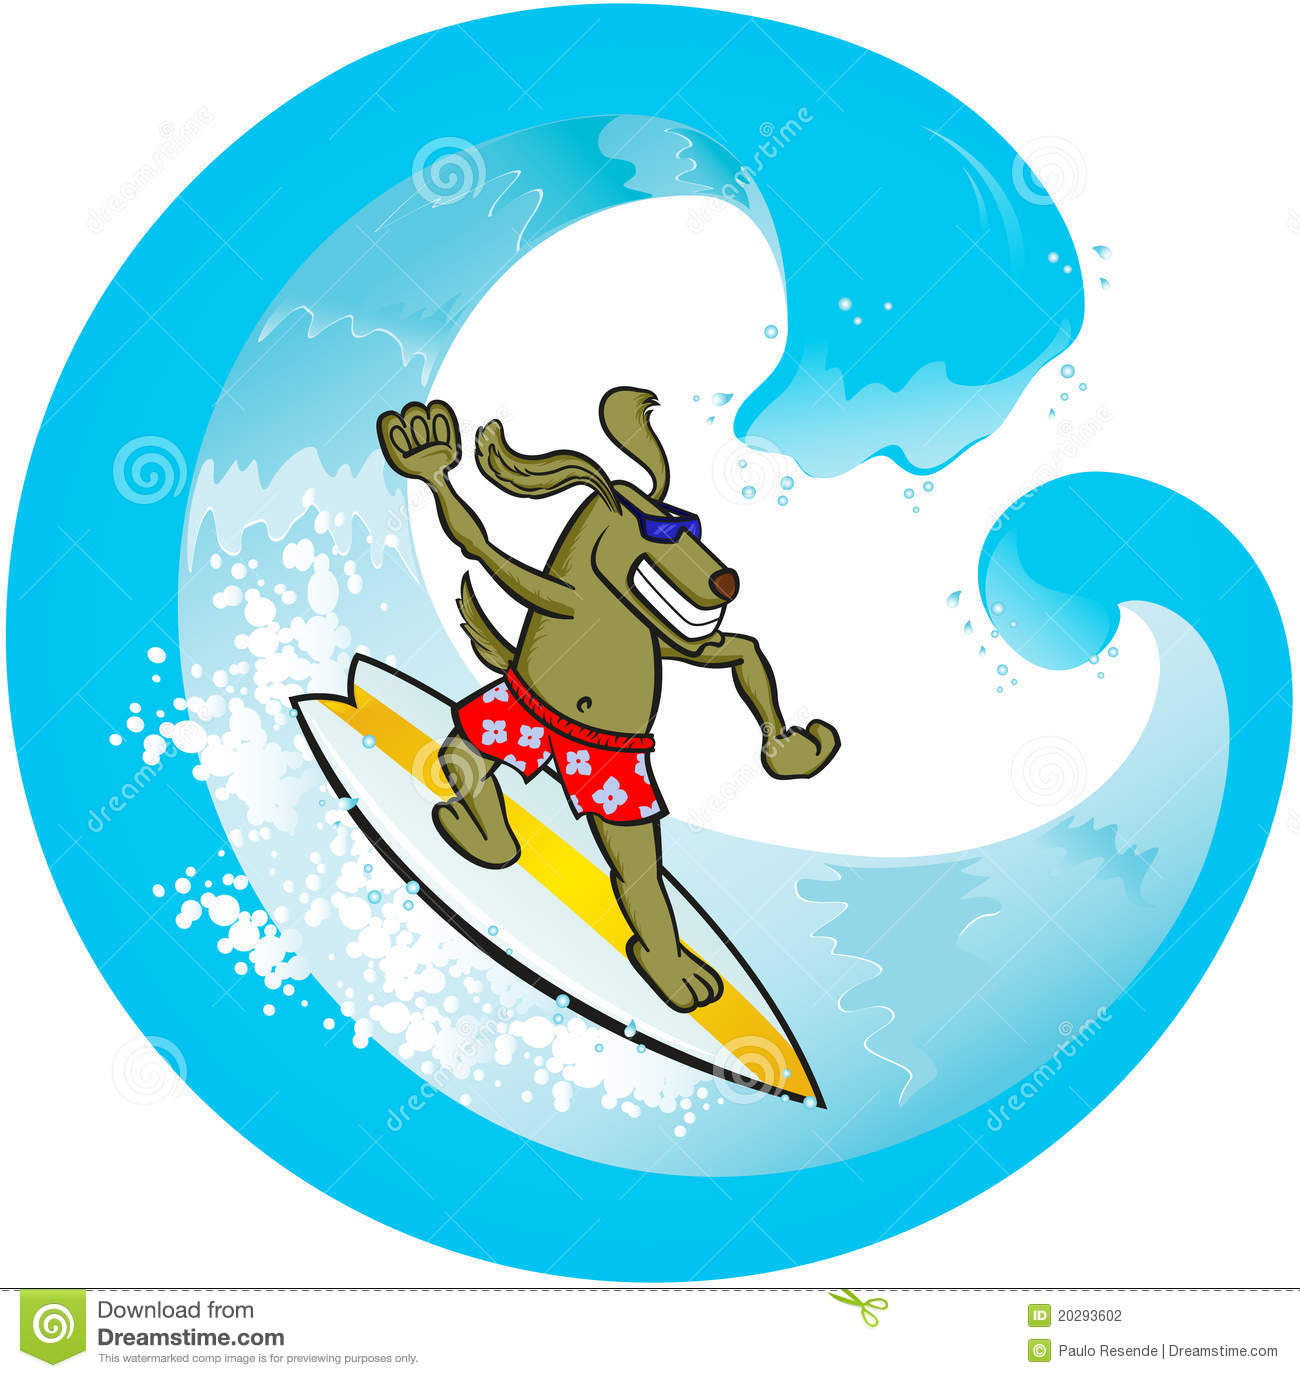 Vector Illustration Of A Dog Surfing The Wave